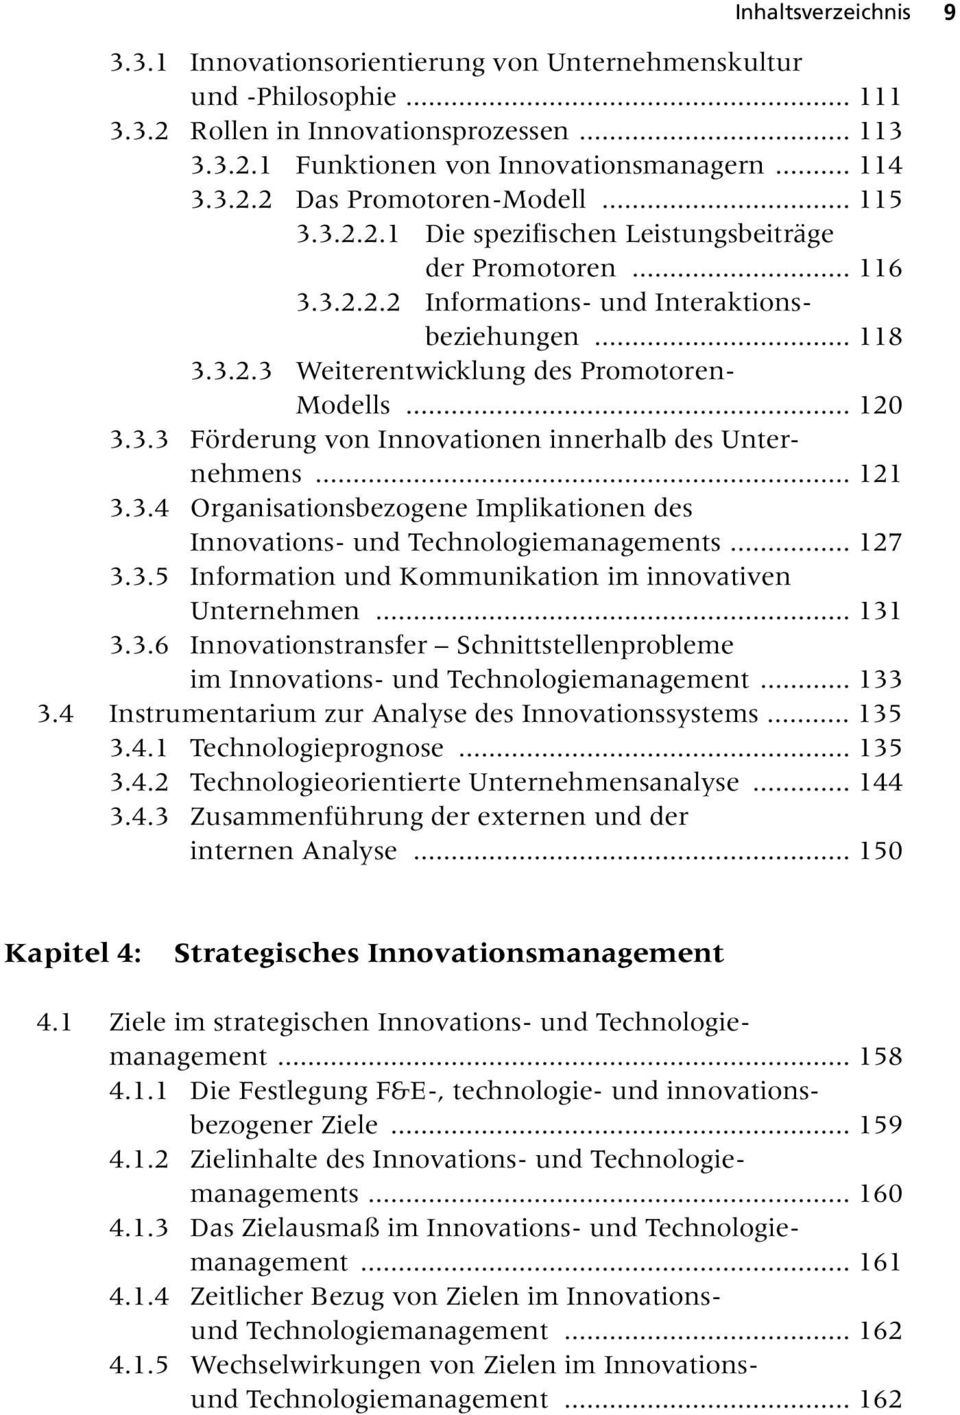 .. 121 3.3.4 Organisationsbezogene Implikationen des Innovations- und Technologiemanagements... 127 3.3.5 Information und Kommunikation im innovativen Unternehmen... 131 3.3.6 Innovationstransfer Schnittstellenprobleme im Innovations- und Technologiemanagement.